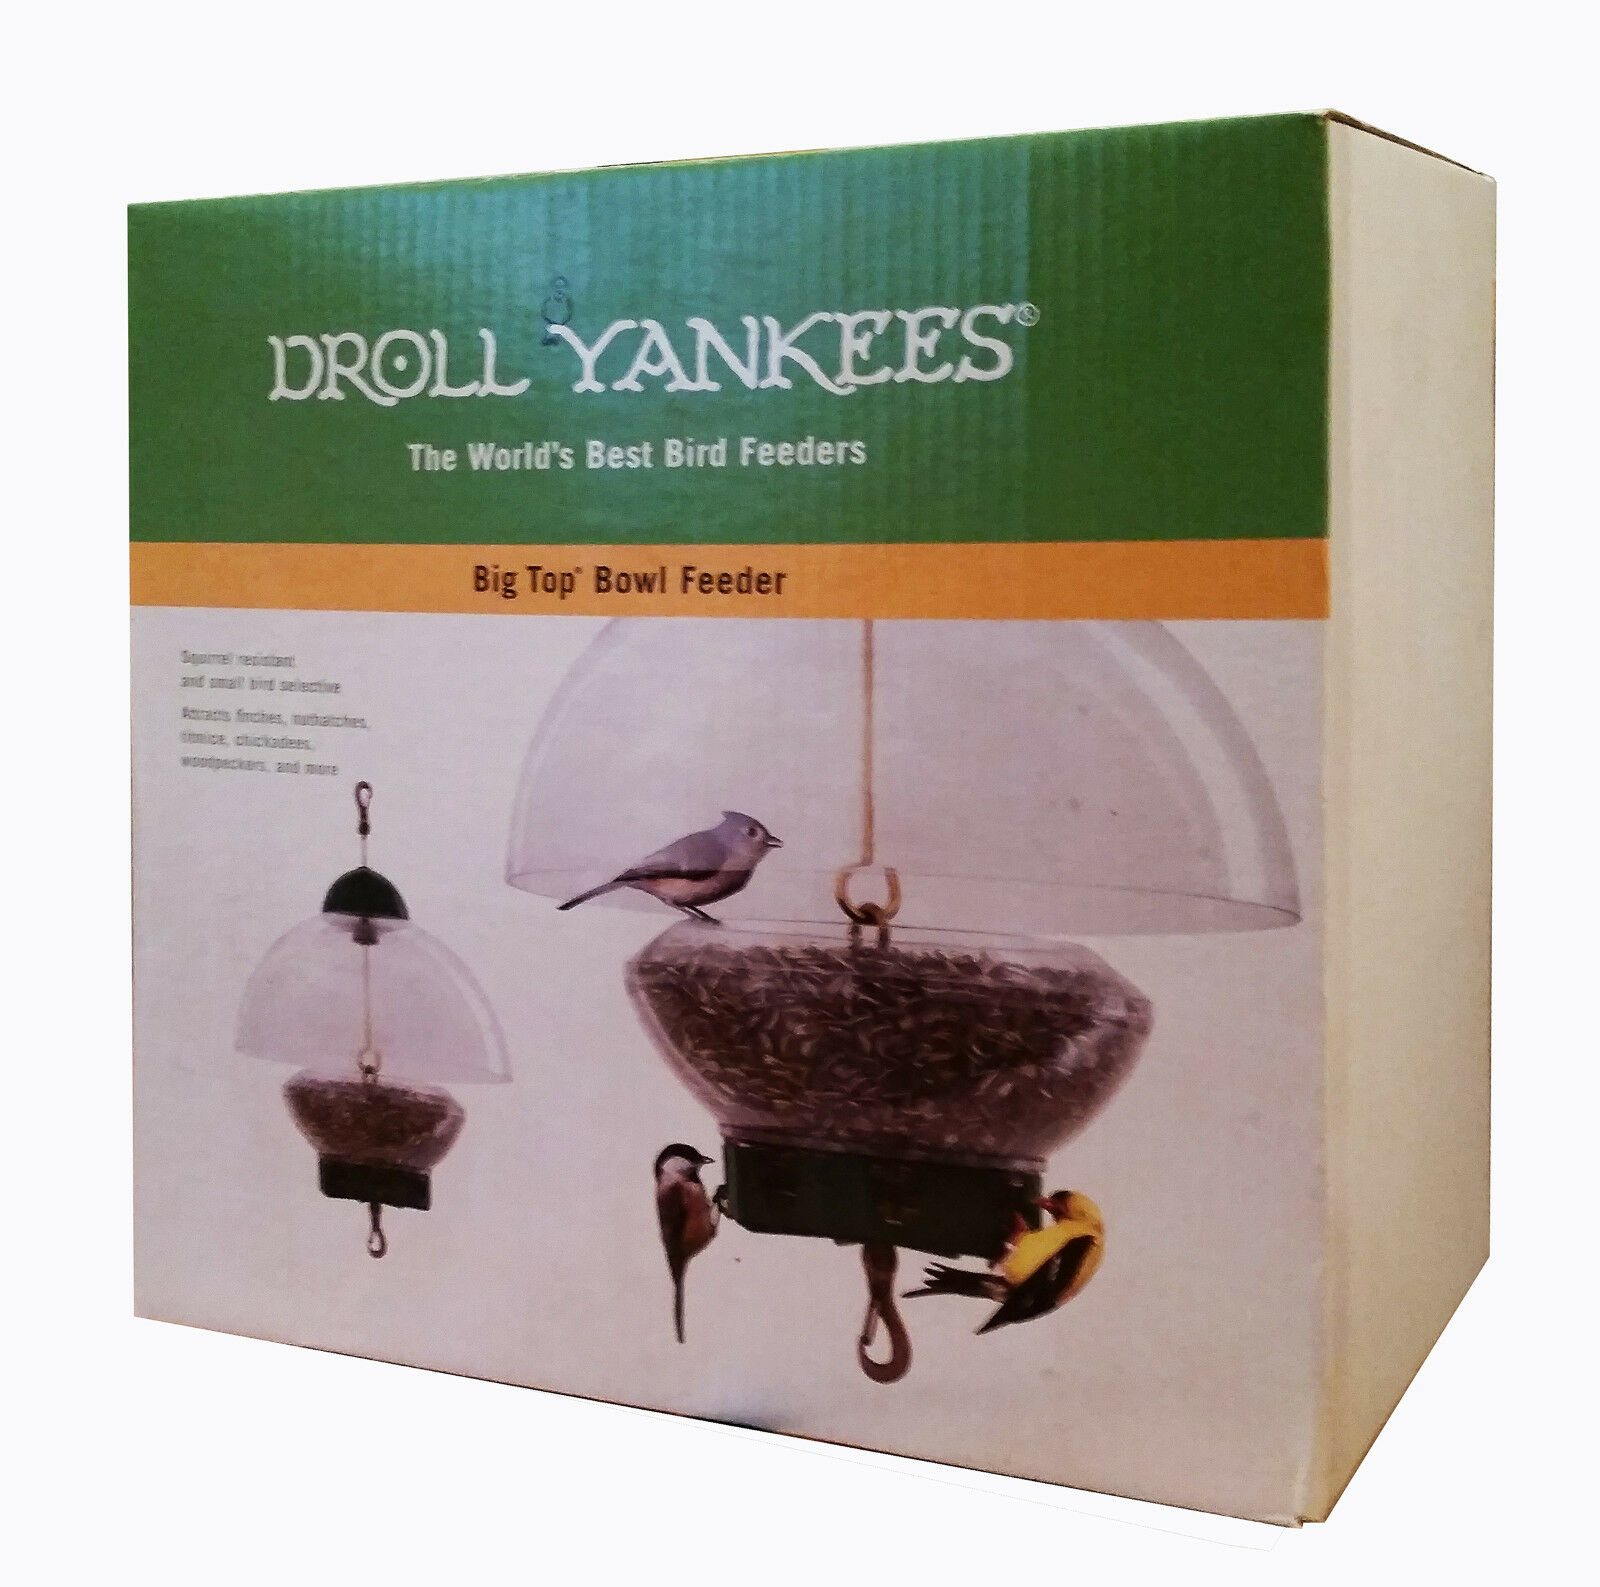 DROLL YANKEES - Big Top Bowl Feeder